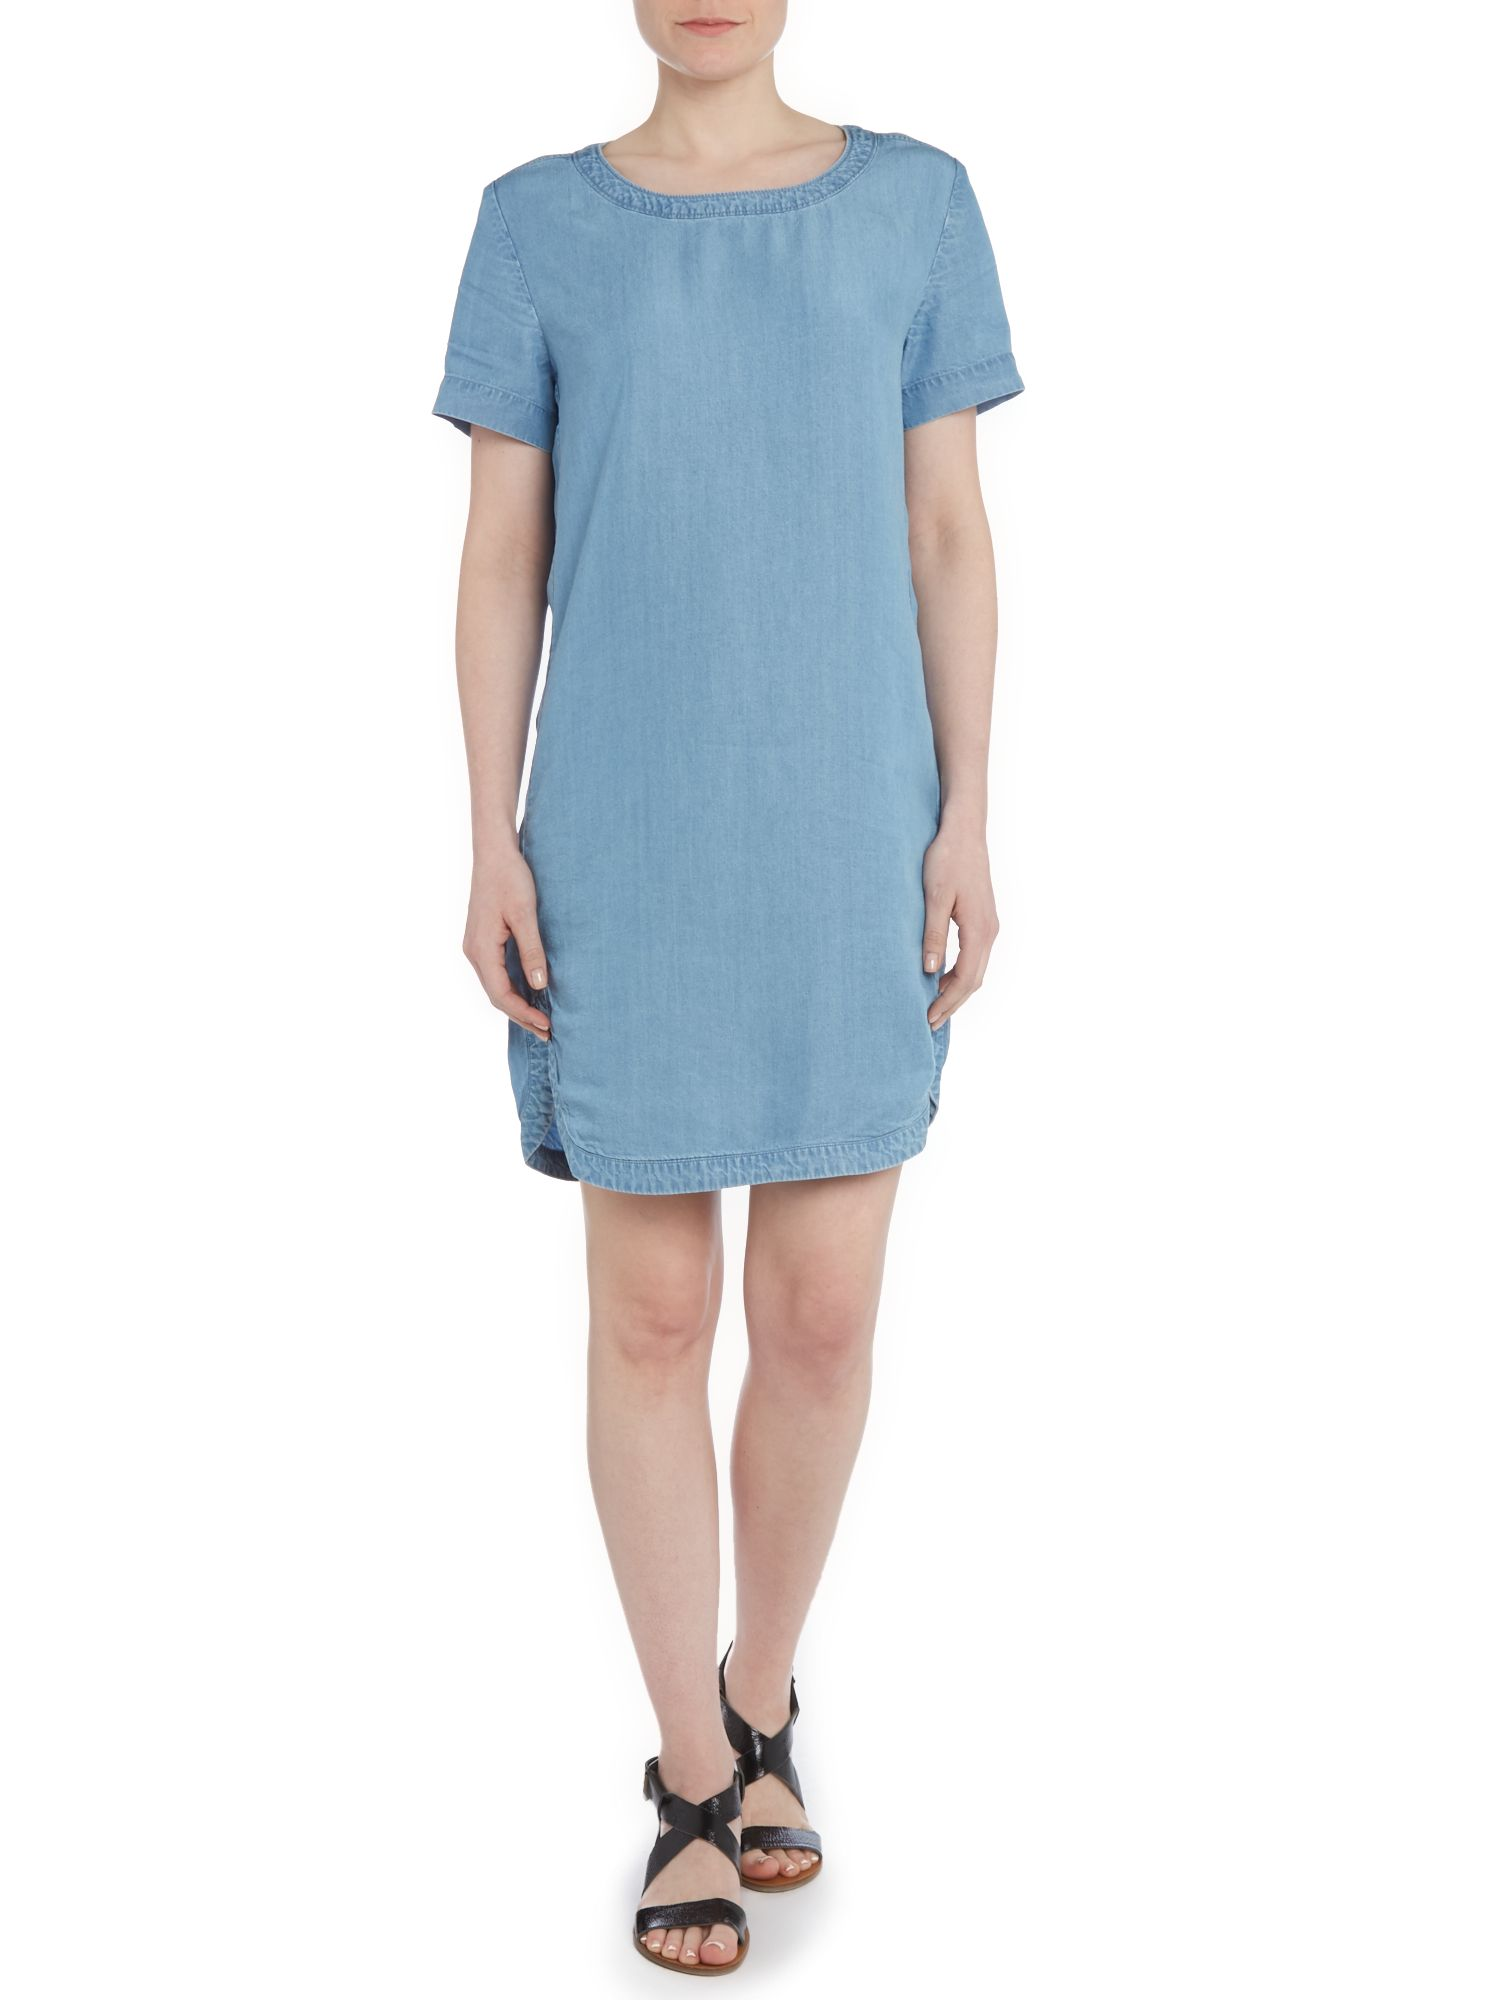 Dawn denim short sleeve dress